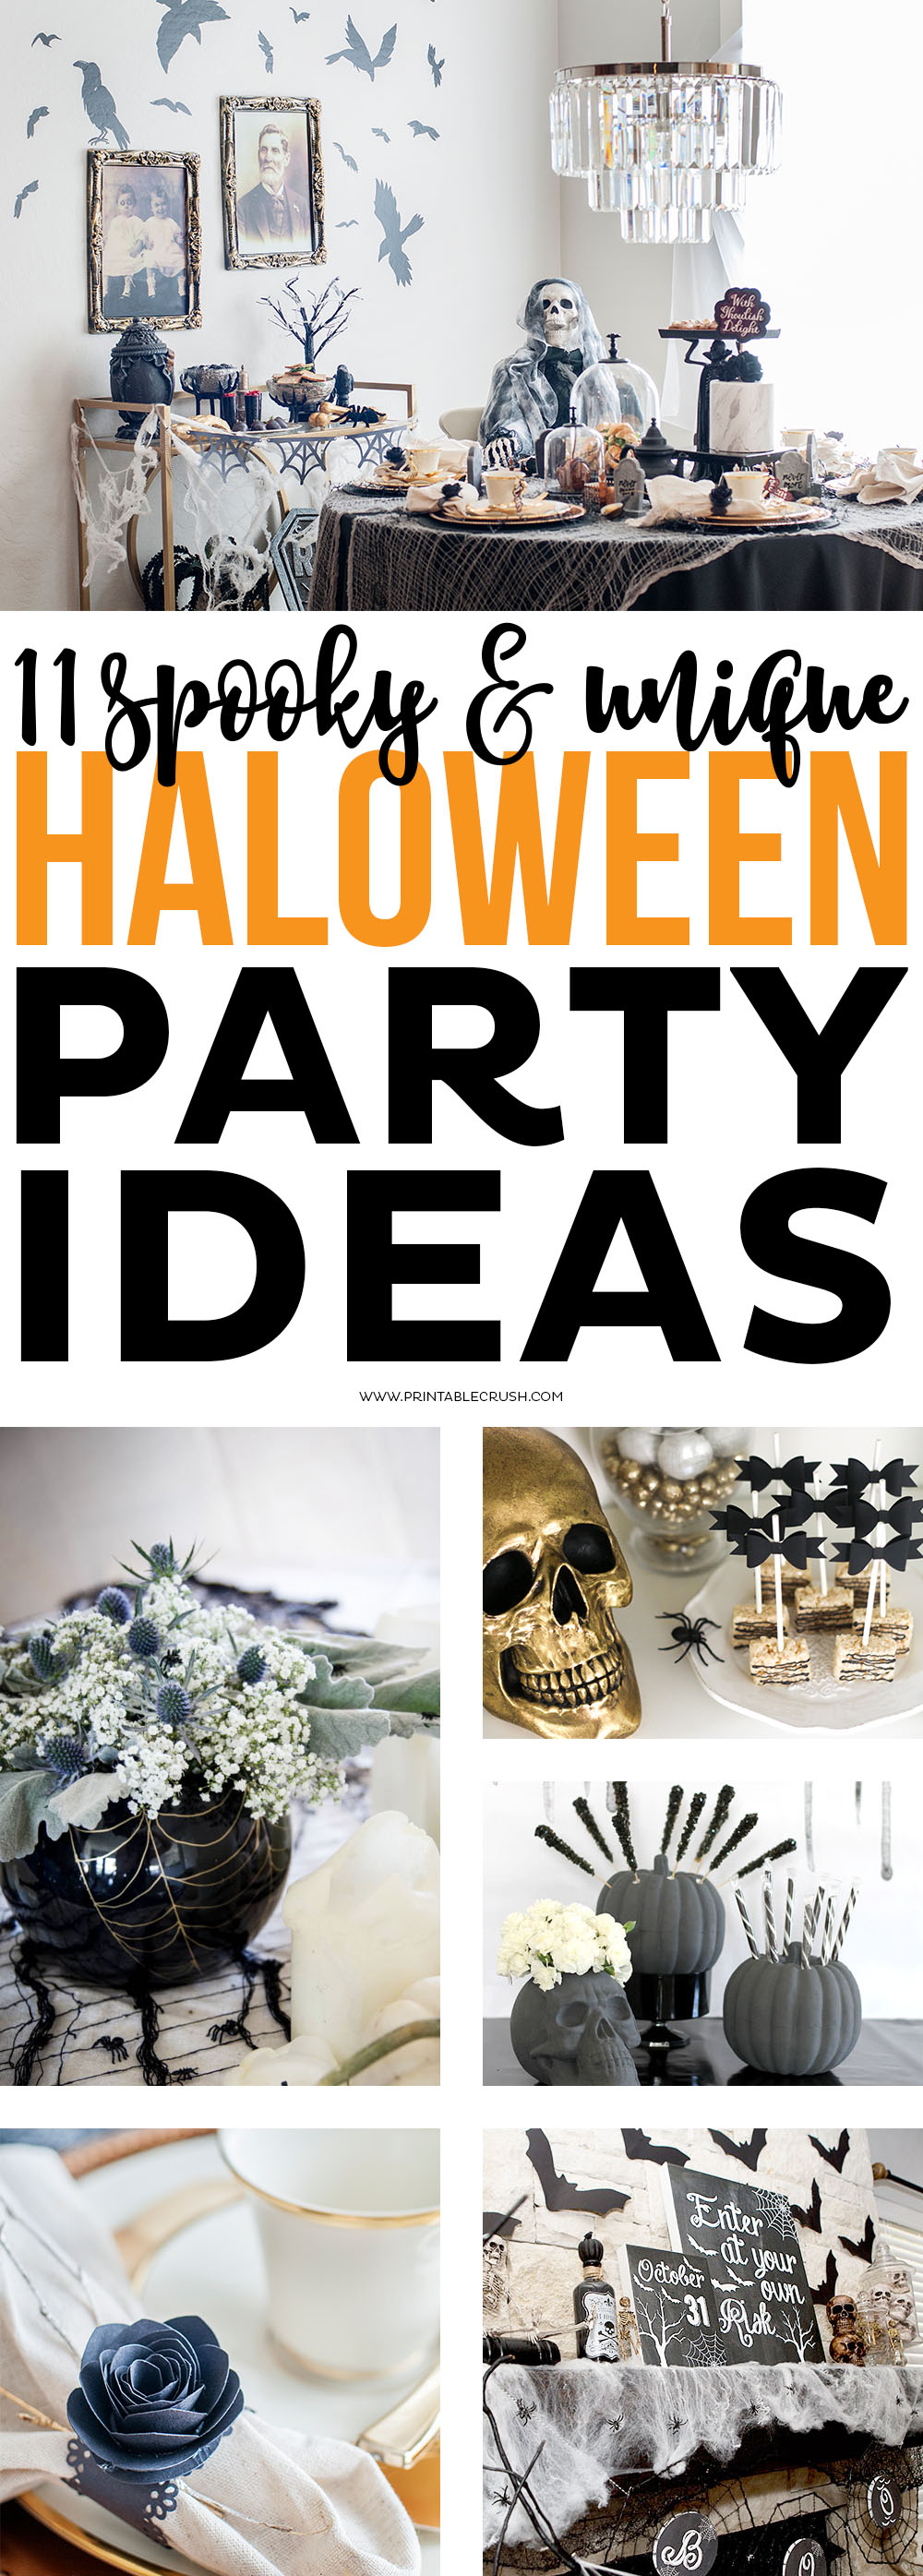 If you are planning on hosting a Halloween party this year, check out these 11 Scary & Unique Halloween Party Ideas for both kids and adults!